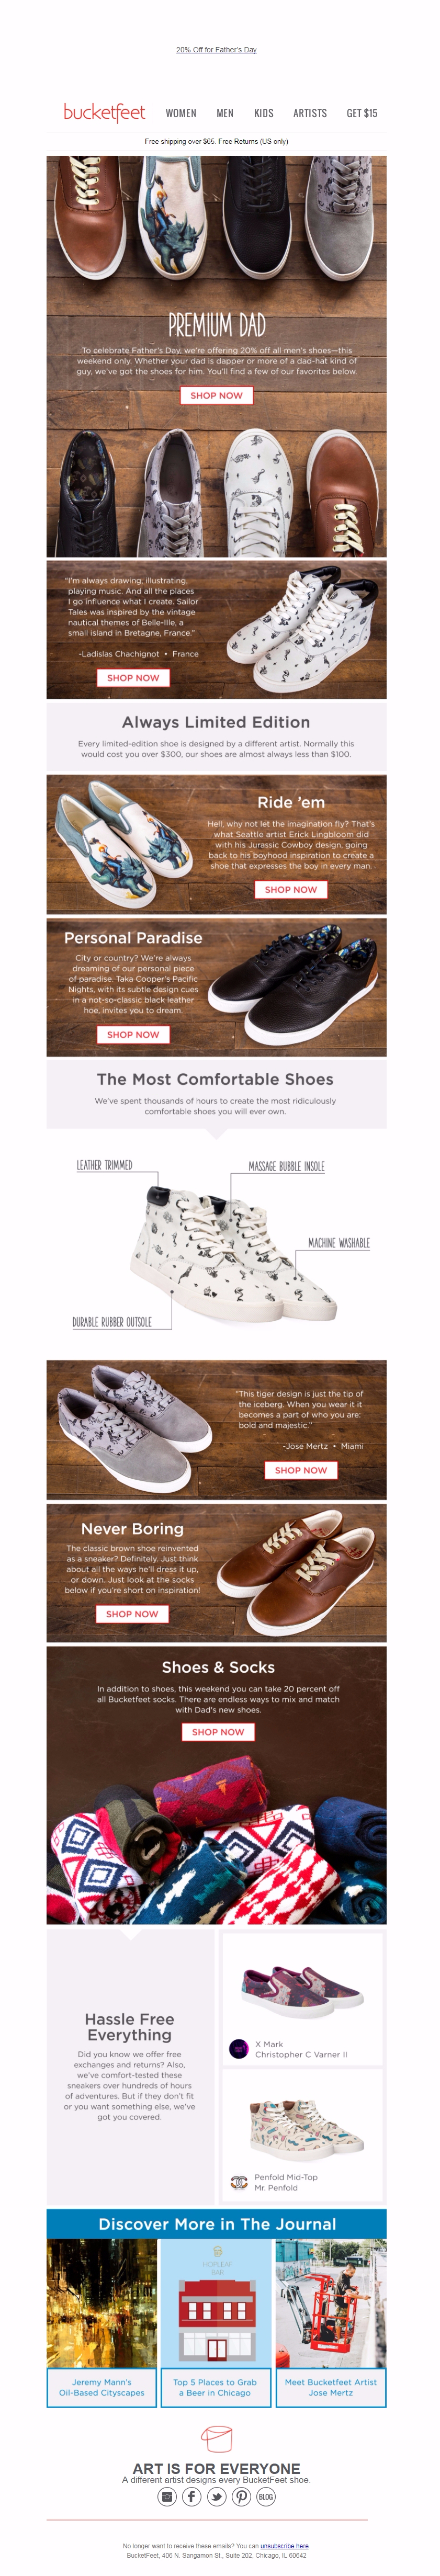 Bucketfeet - Email inspiration